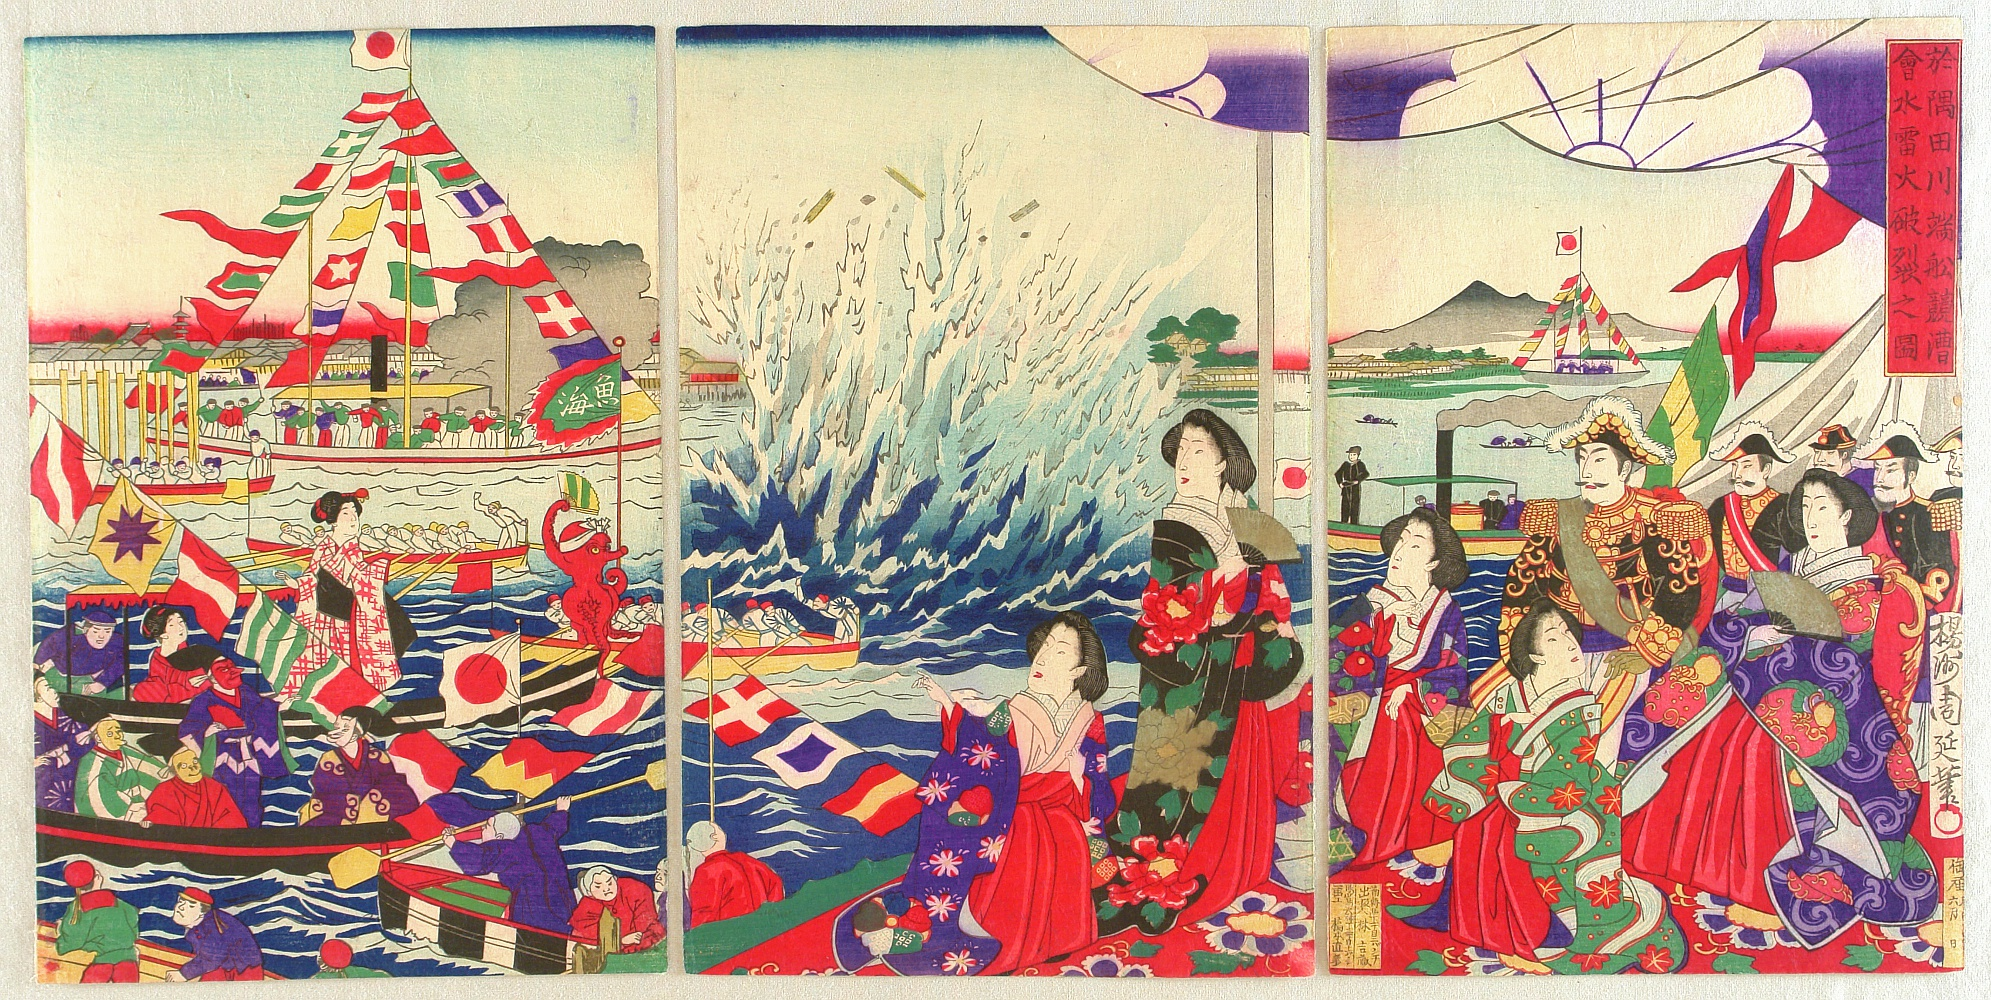 meiji period In christie's inaugural online auction of japanese art, we are pleased to offer a selection of artworks from the meiji period (1868-1912) the art of this period.